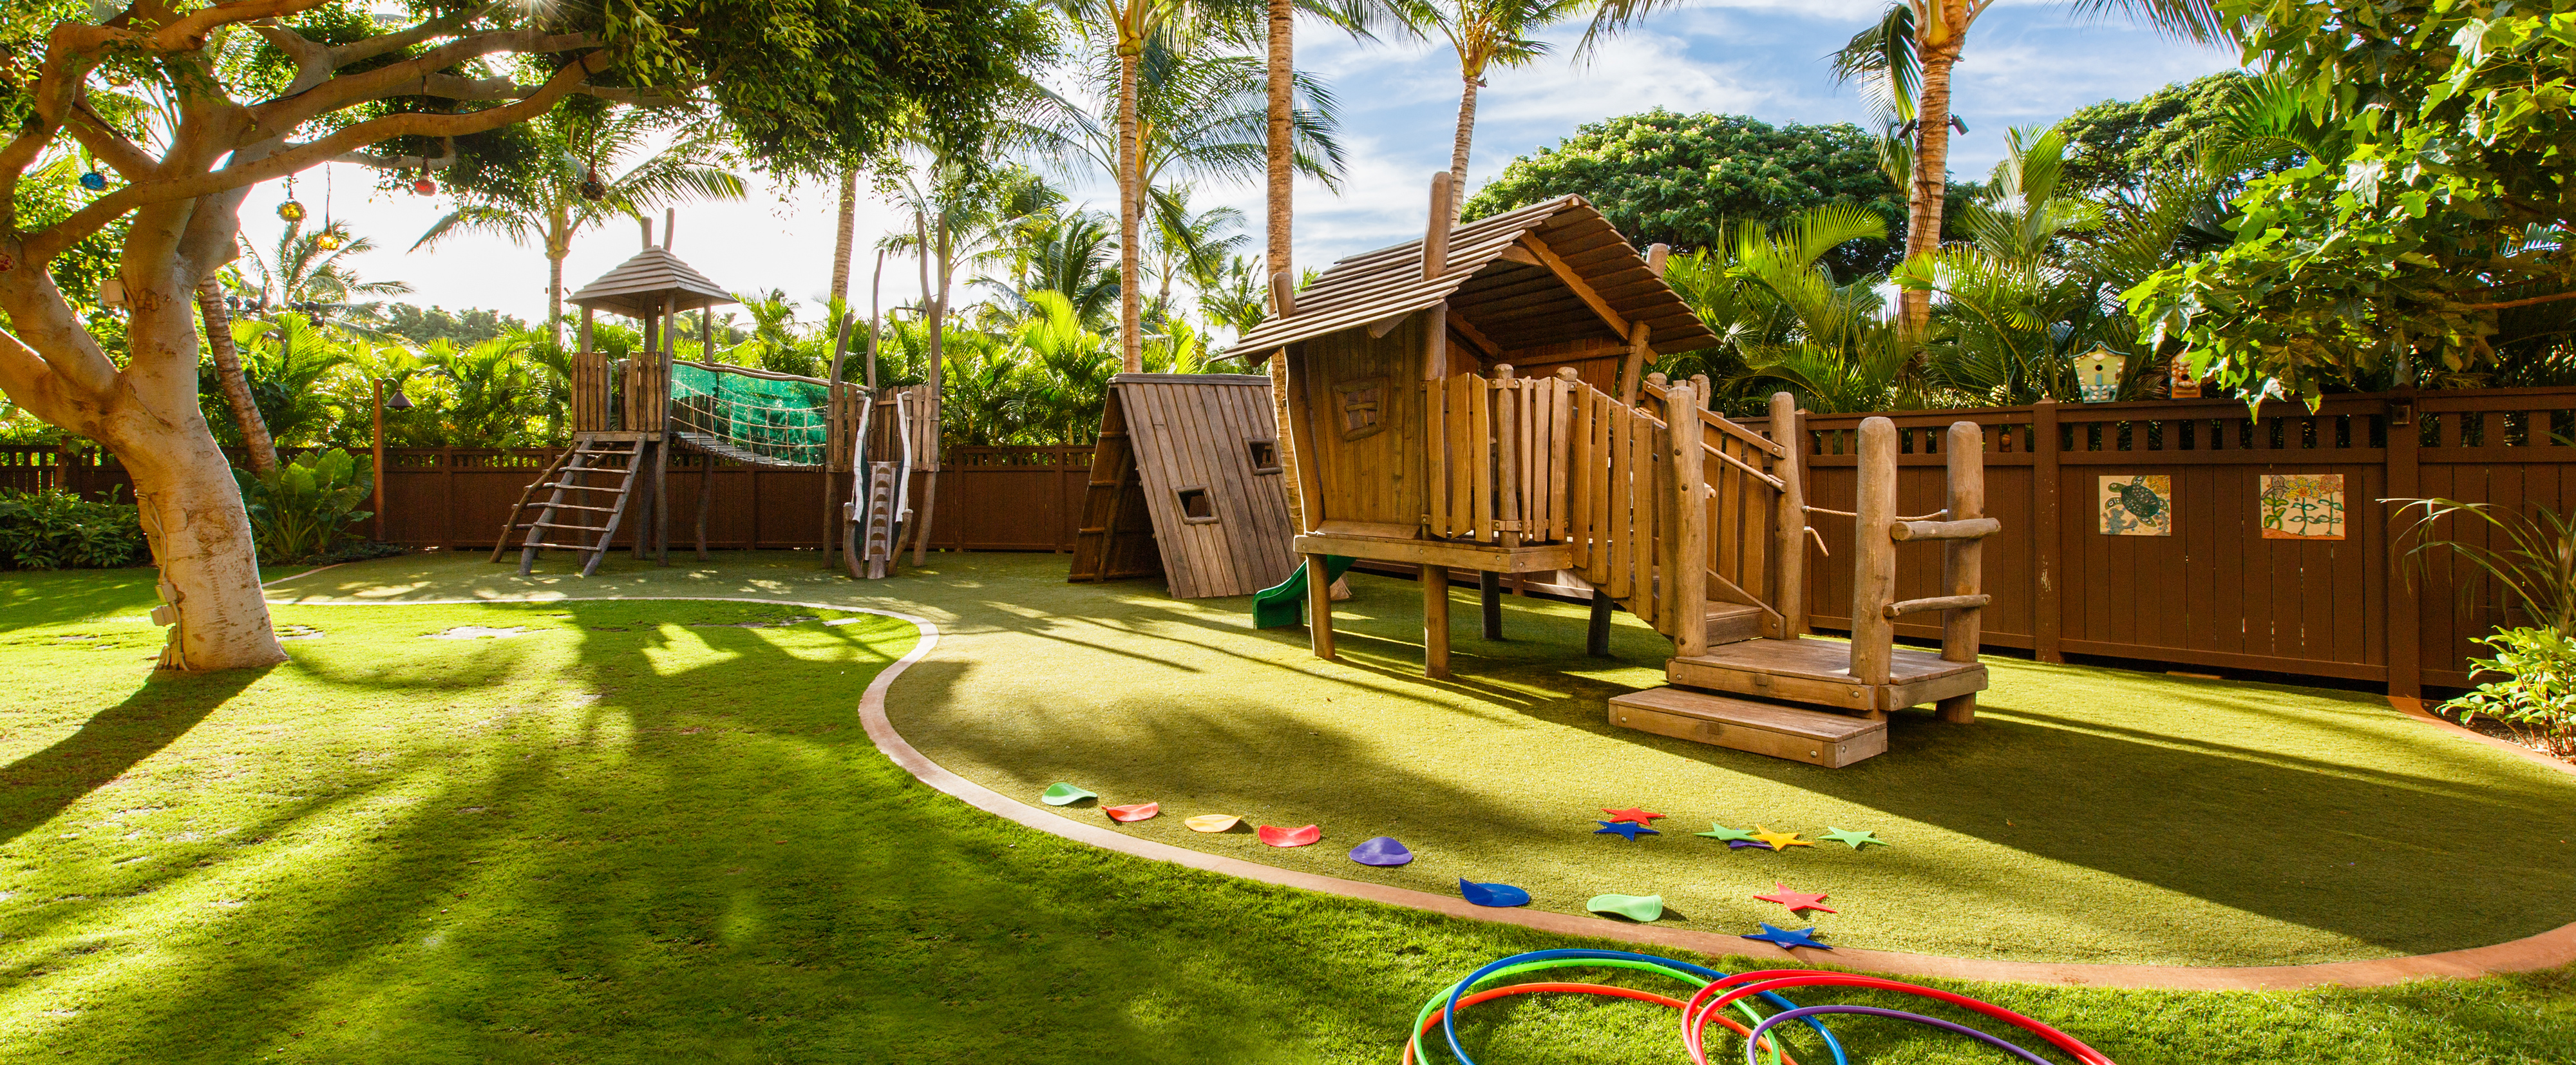 ... A Grassy Playground Area With 2 Wooden Climbing Structures, A Playhouse  And Hula Hoops On ...